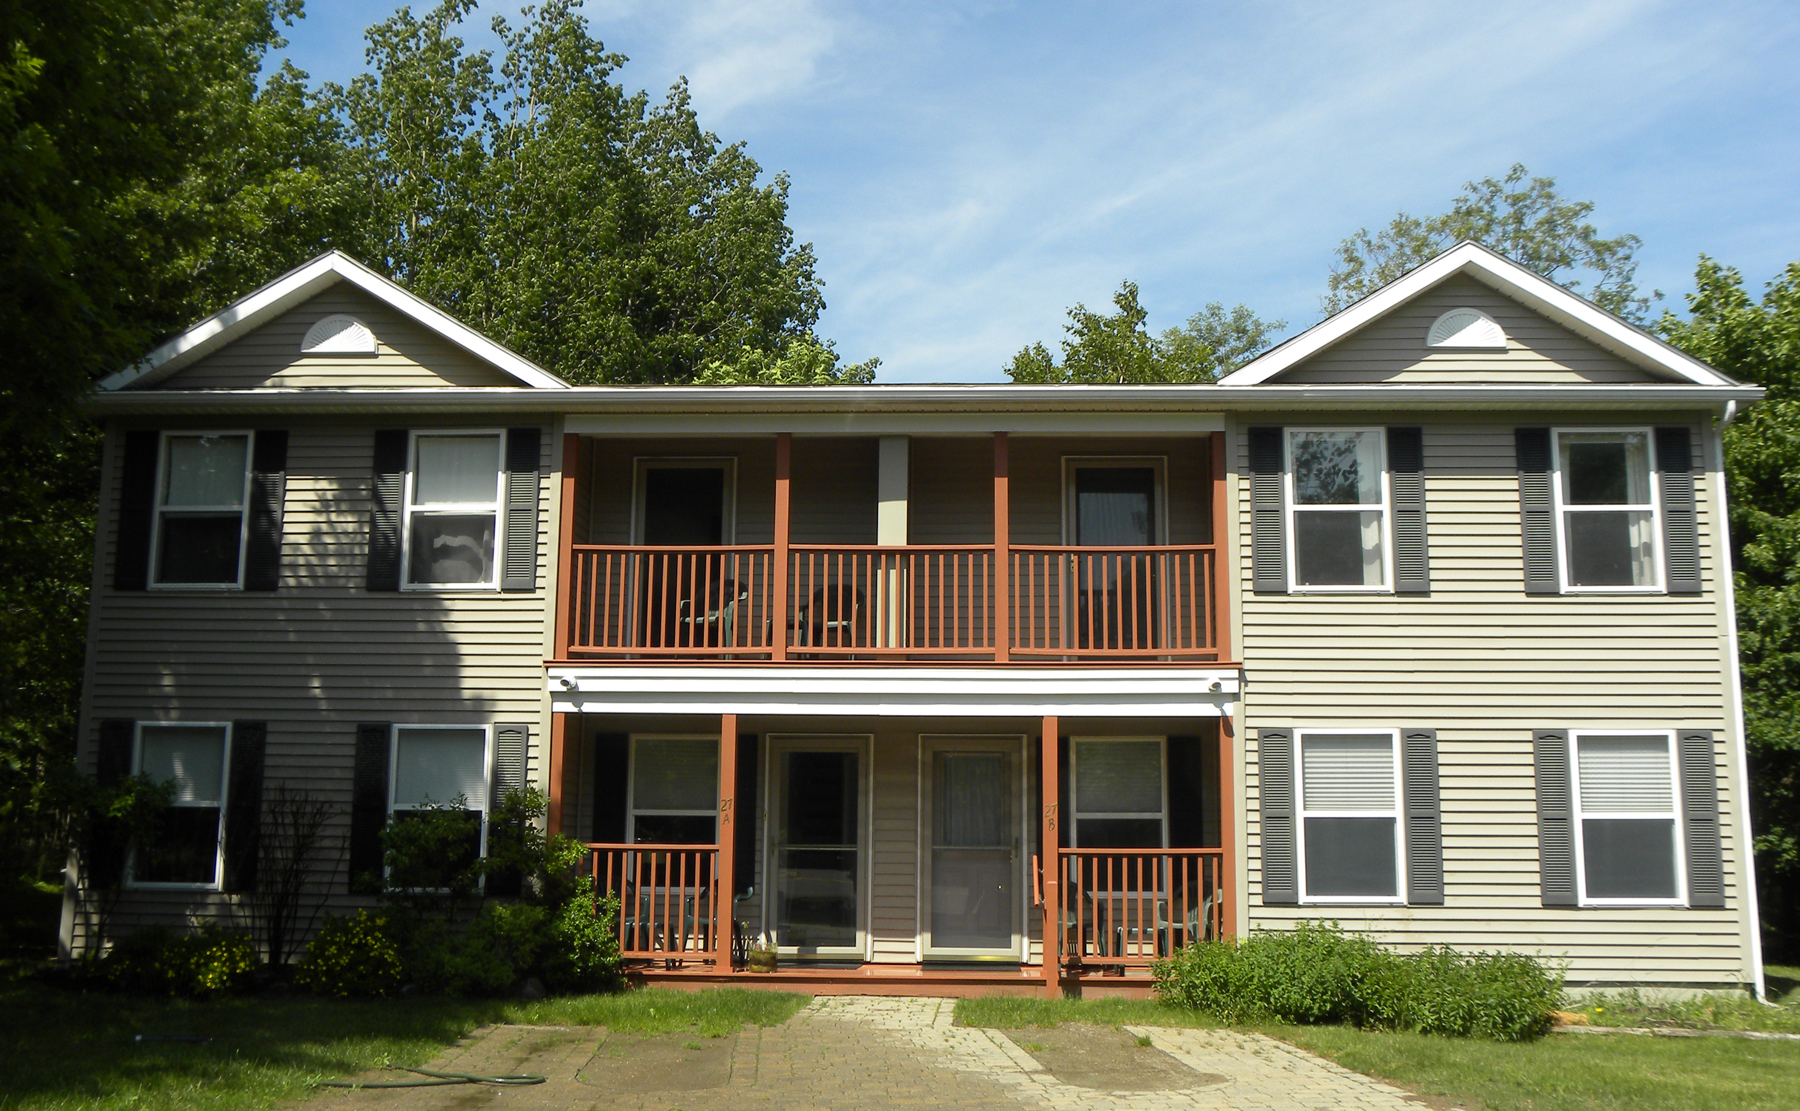 Condominium for Sale at 27B West Street Extension Bar Harbor, Maine 04609 United States